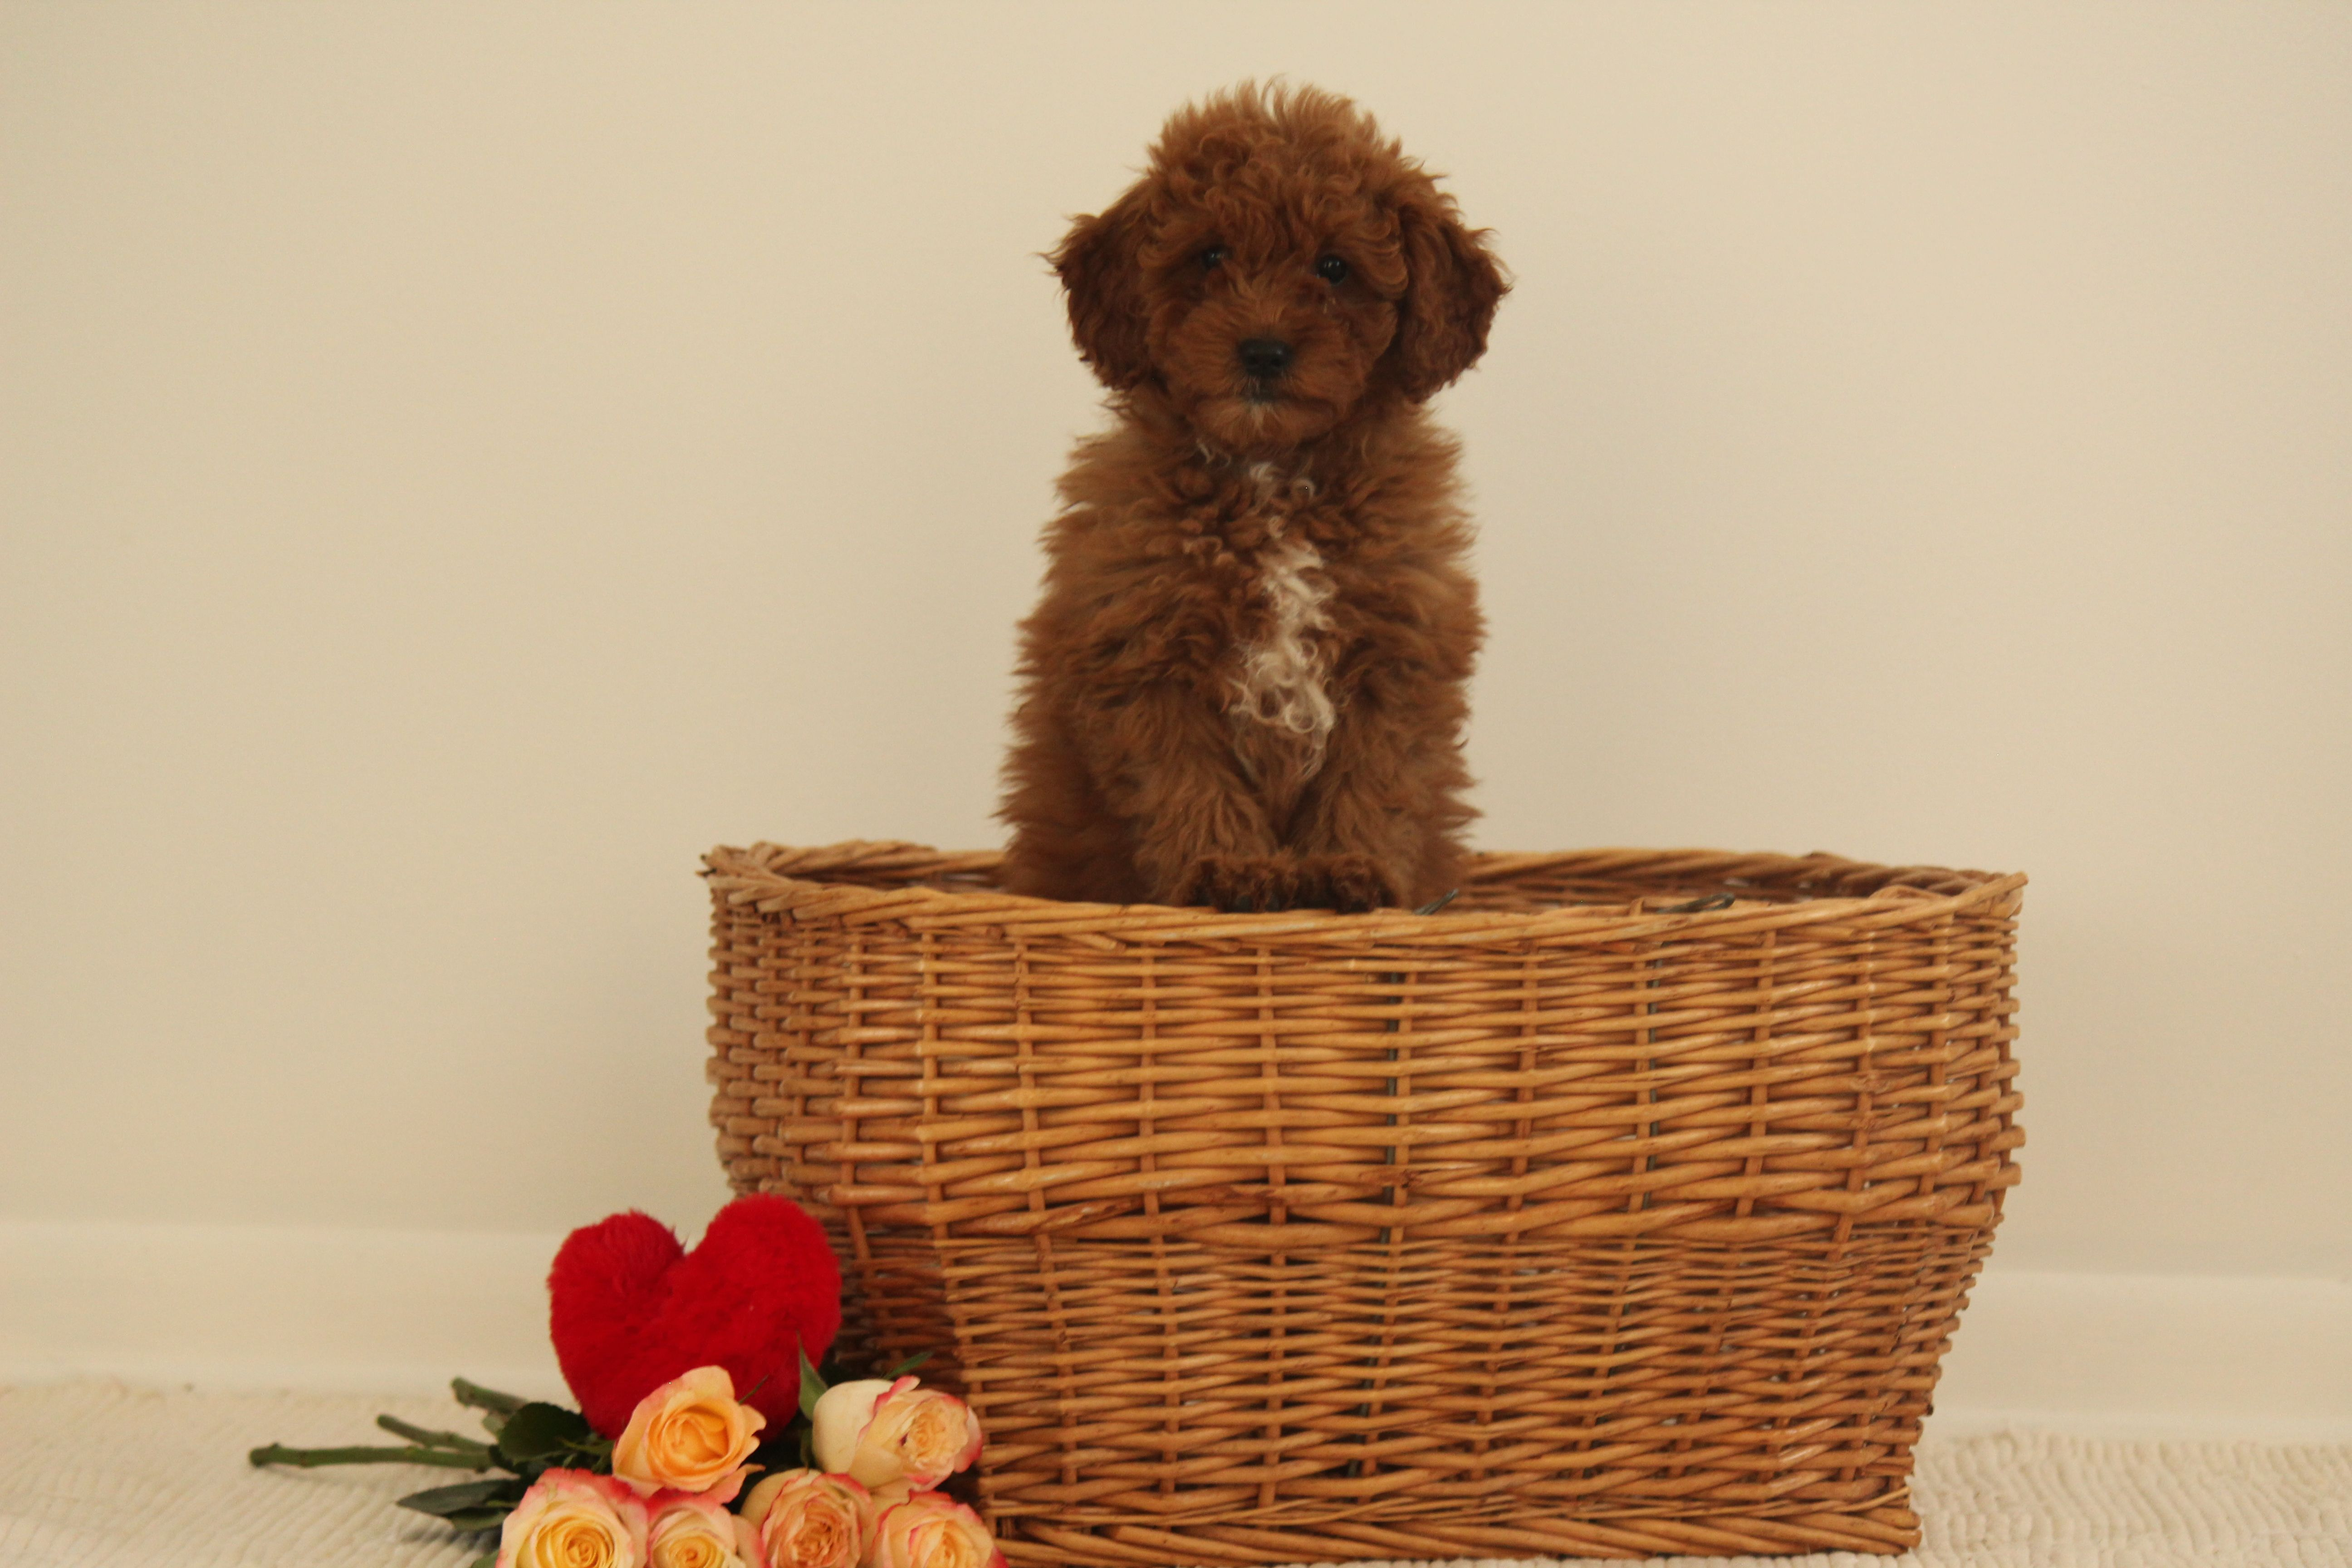 Maxine Puppie F1b Miniature Goldendoodle For Sale Near Wakarusa Indiana In 2020 Puppies For Sale Mini Goldendoodle Puppies Goldendoodle